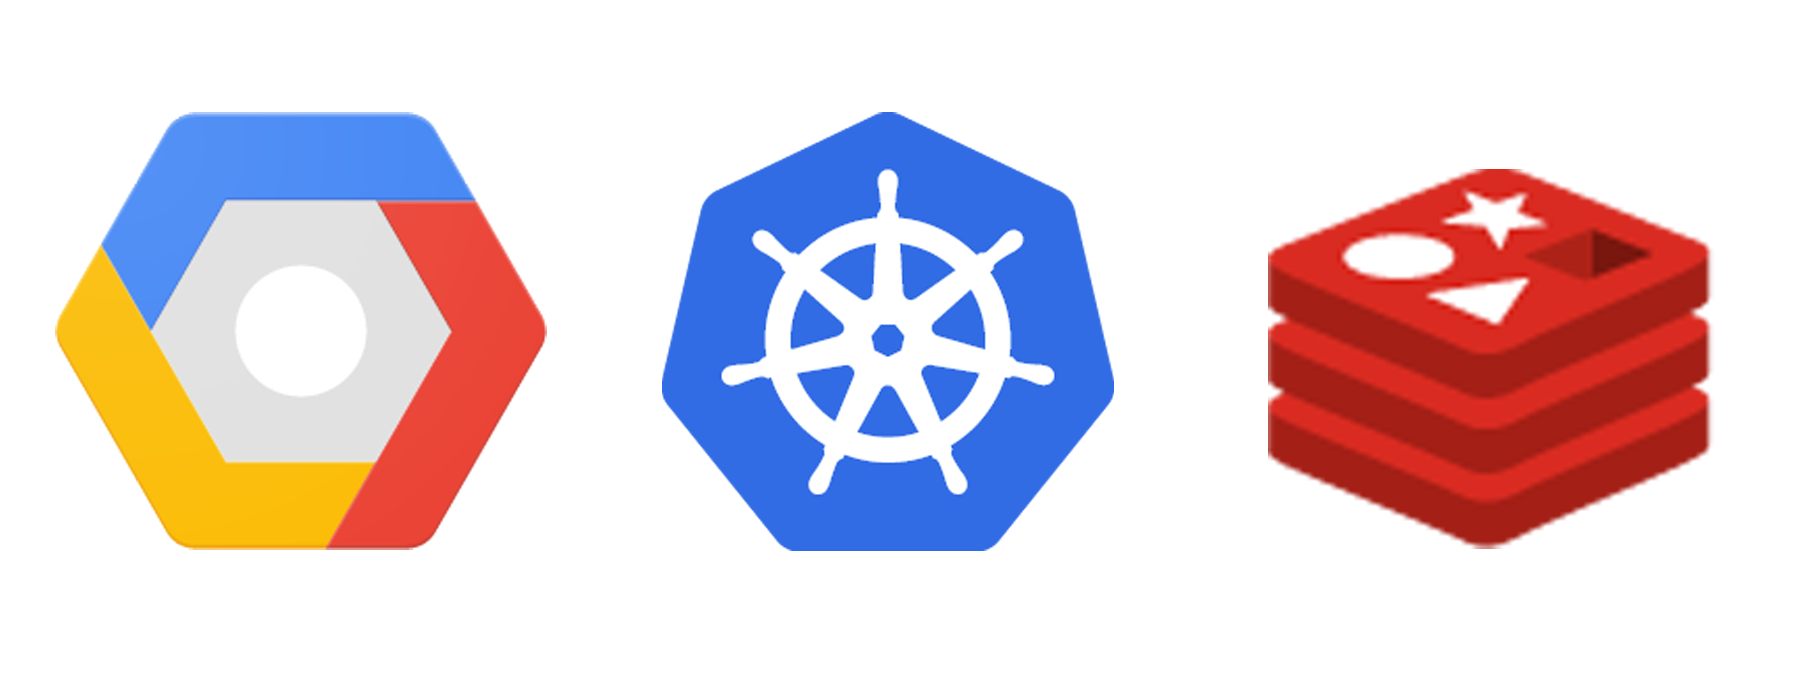 Deploying Redis with Persistence on Google Kubernetes Engine